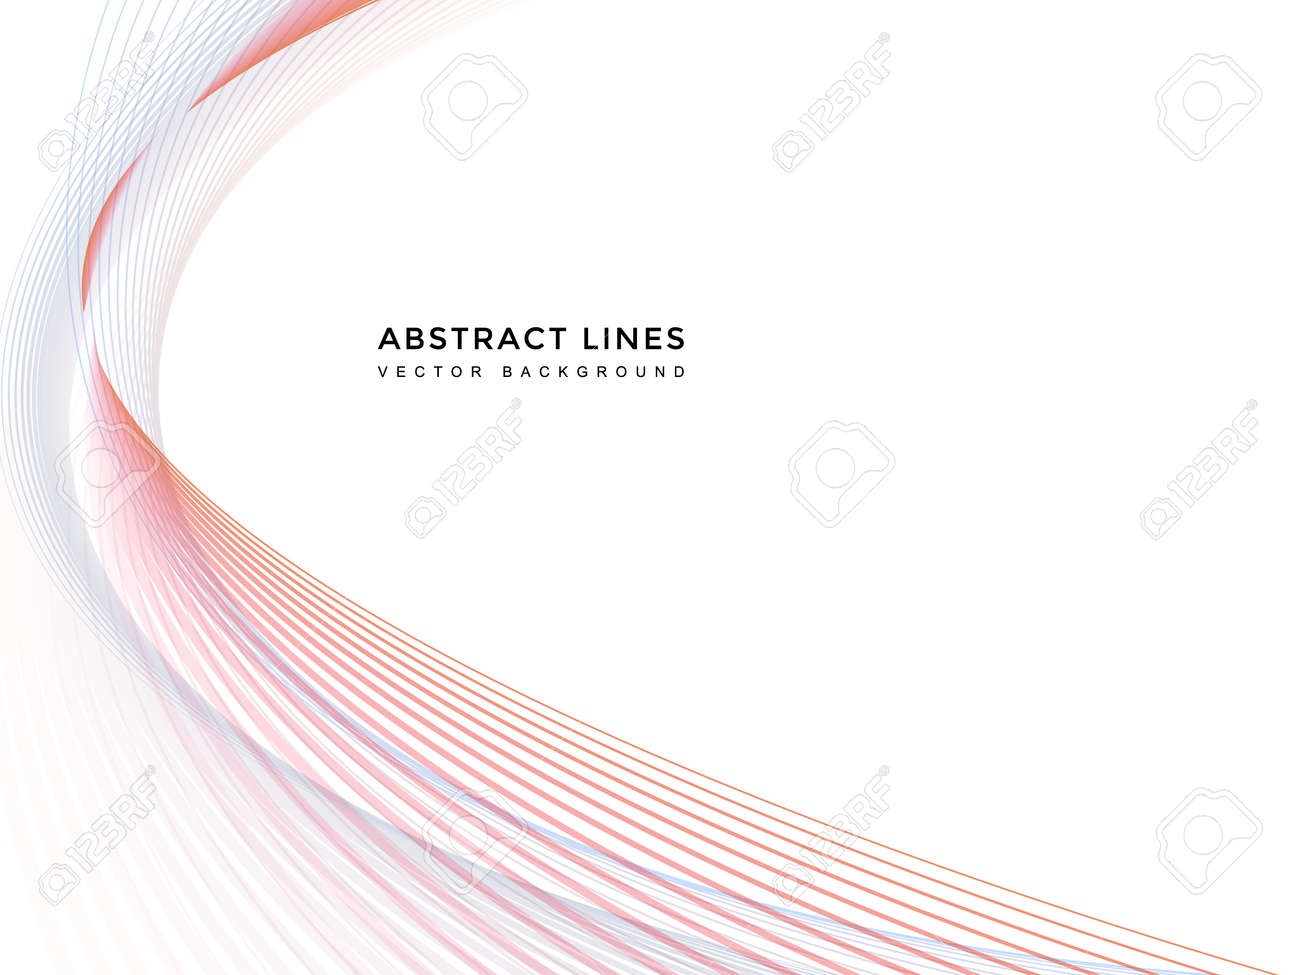 abstract line background - 152141741